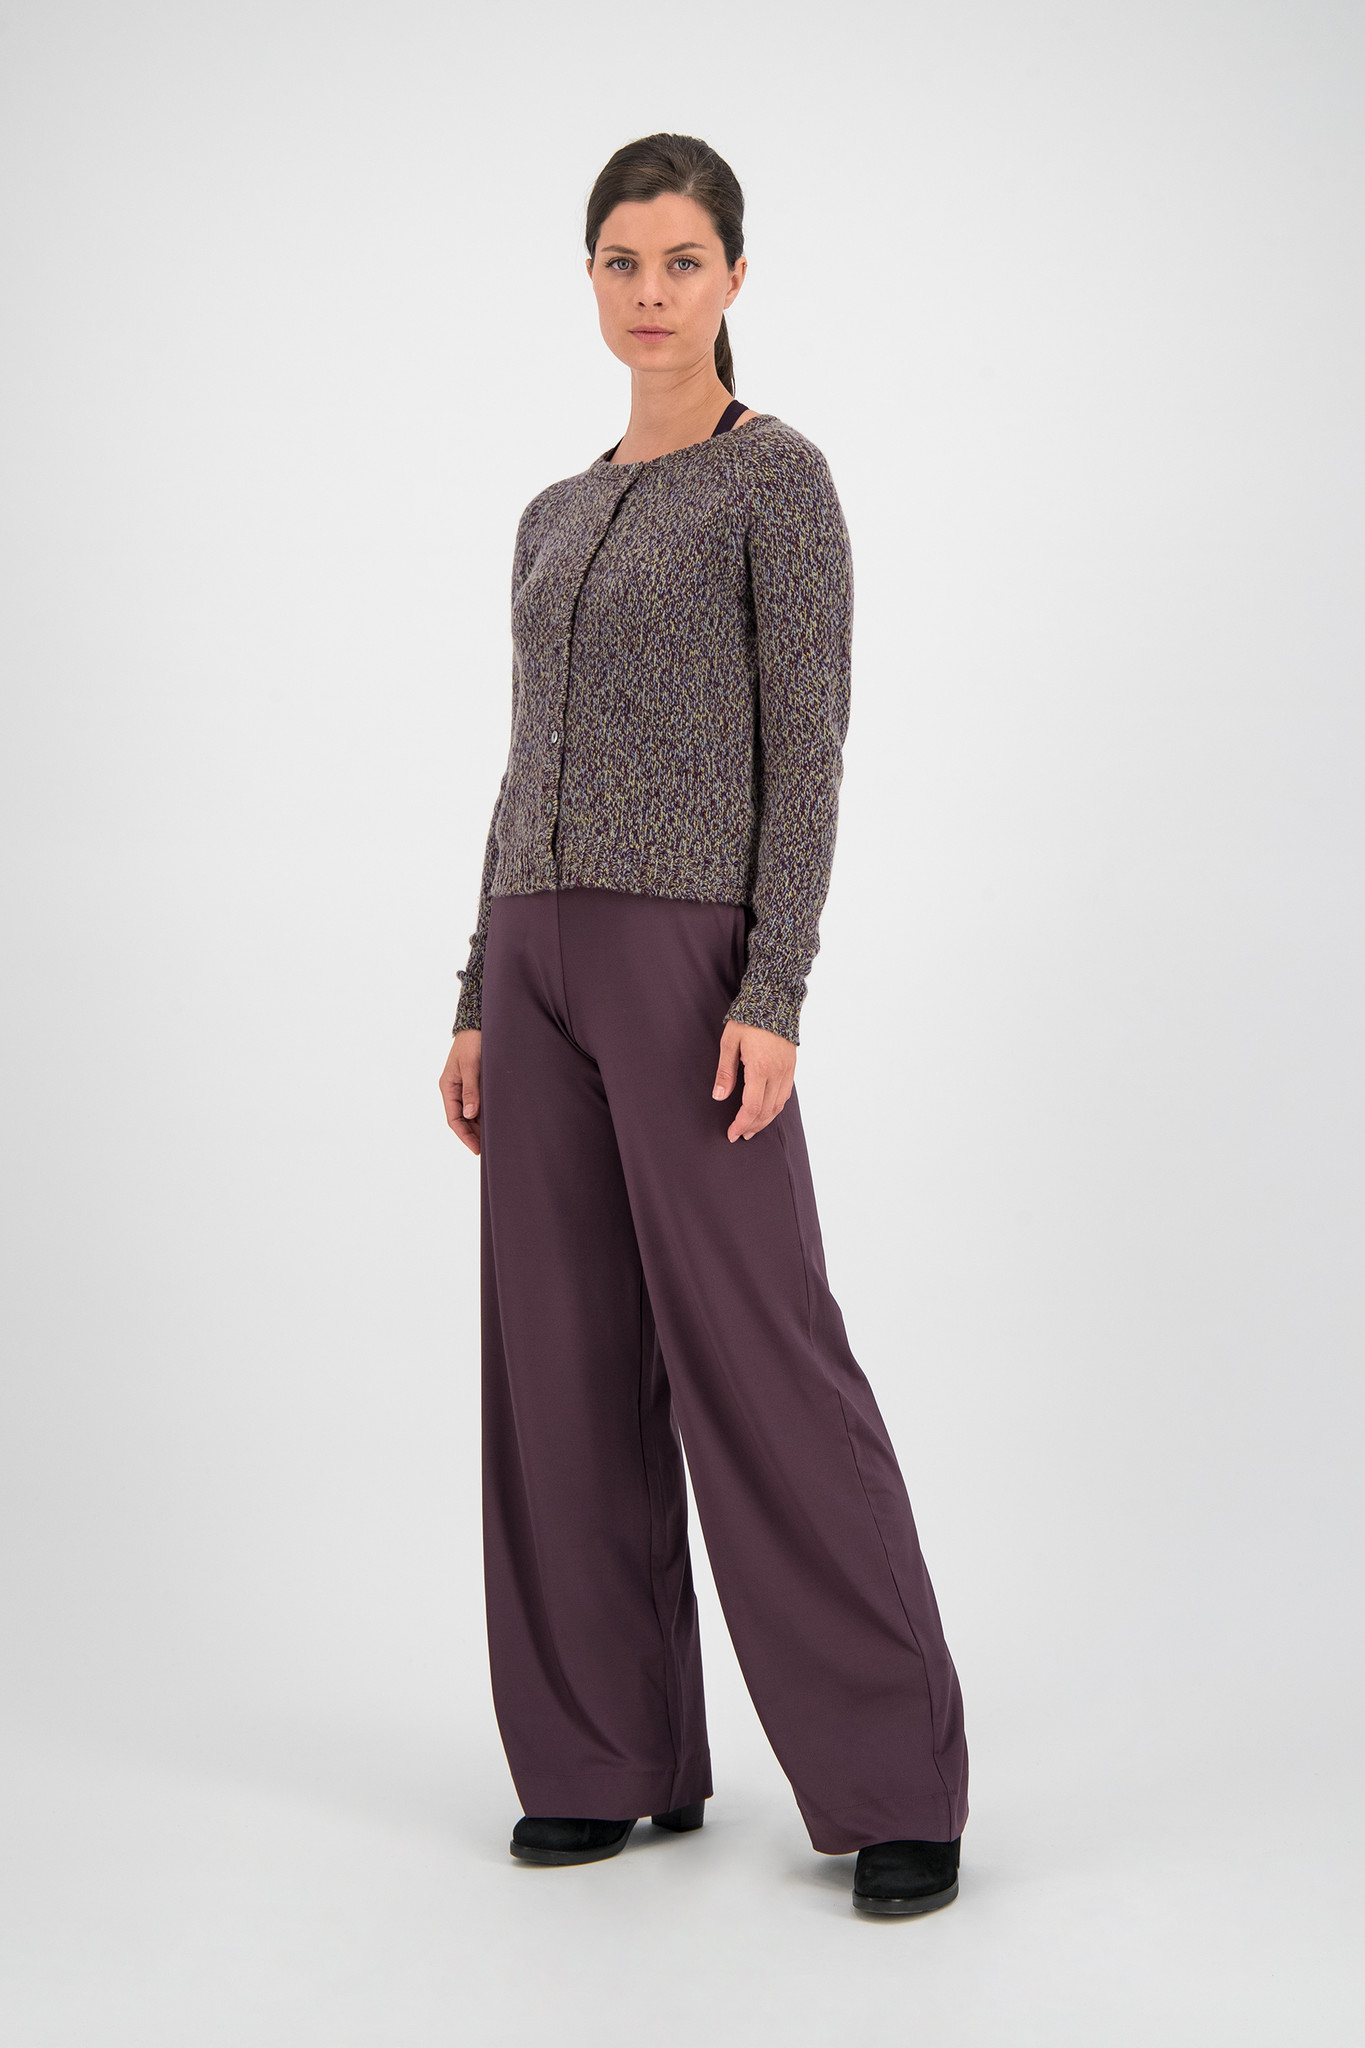 SYLVER Twisted Cardigan - Choco Wine